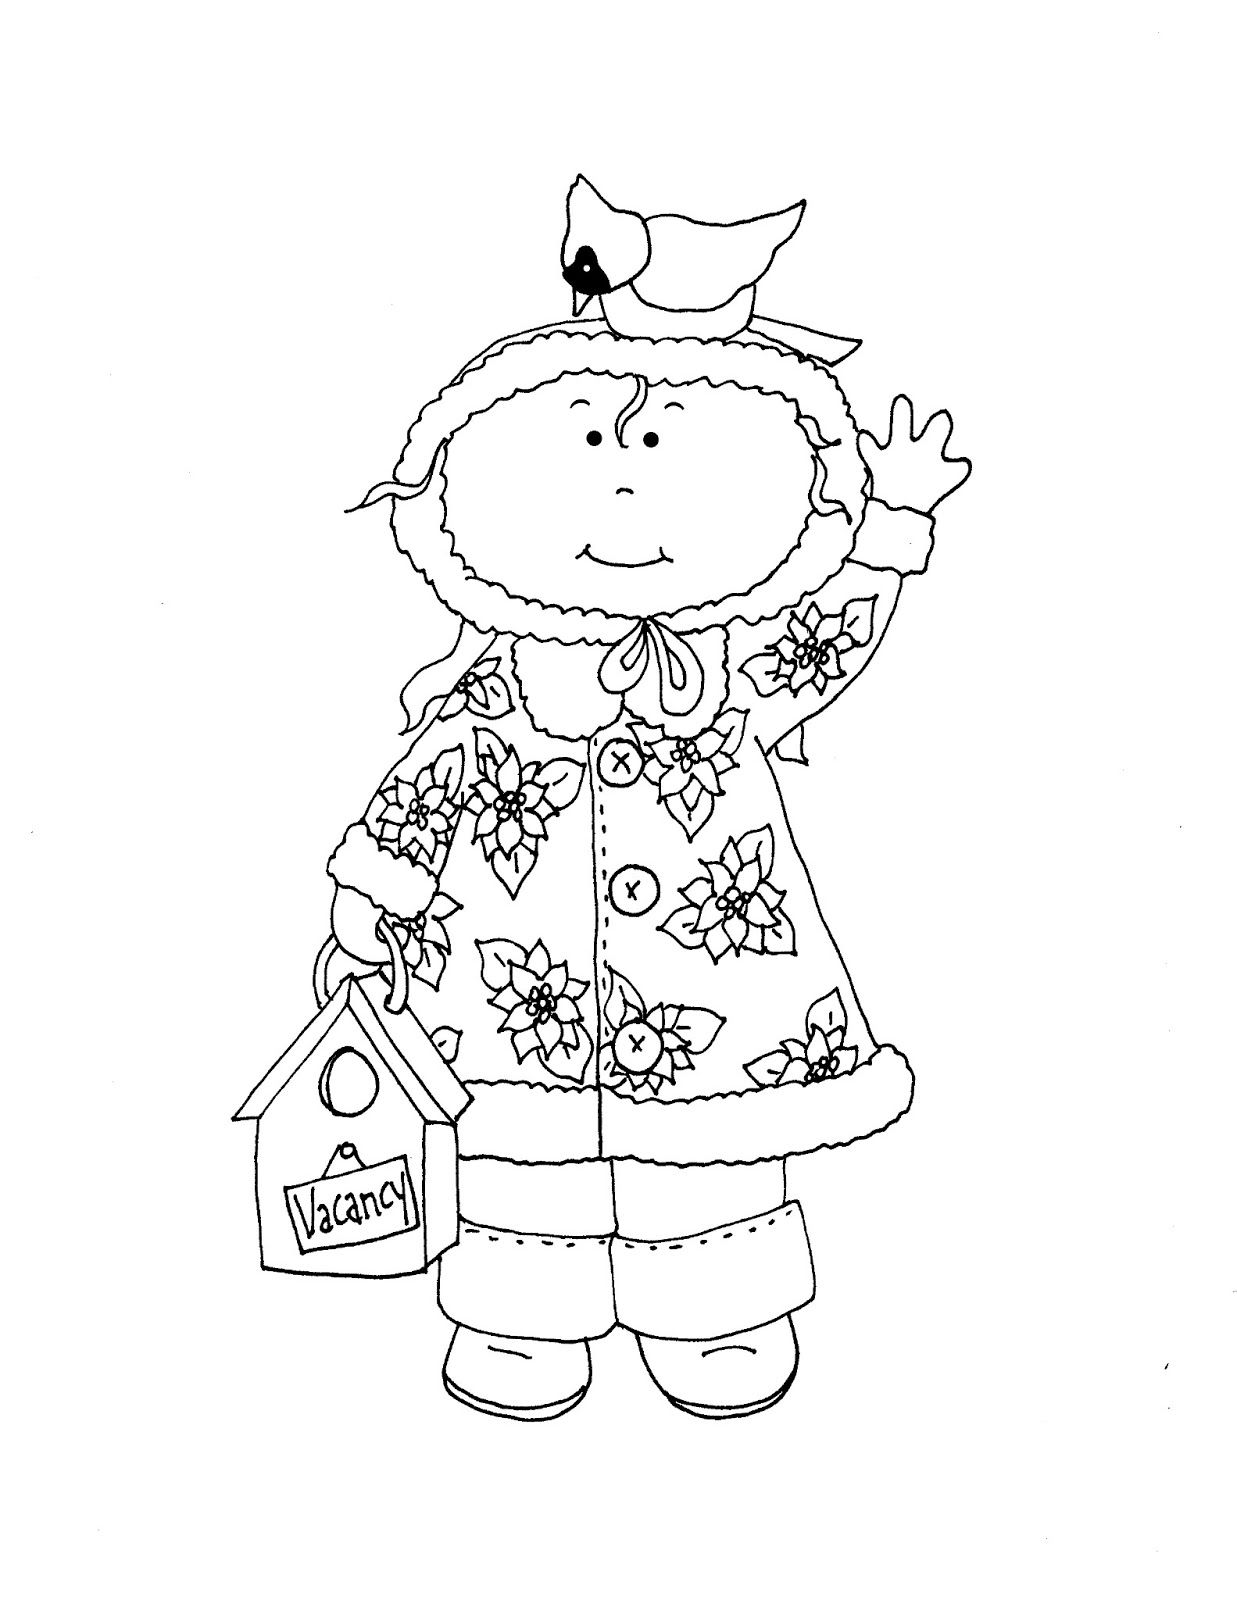 Free Dearie Dolls Digi Stamps Christmas In July Dearie With Cardinal Digi Stamps Coloring Pages Winter Digi Stamps Free